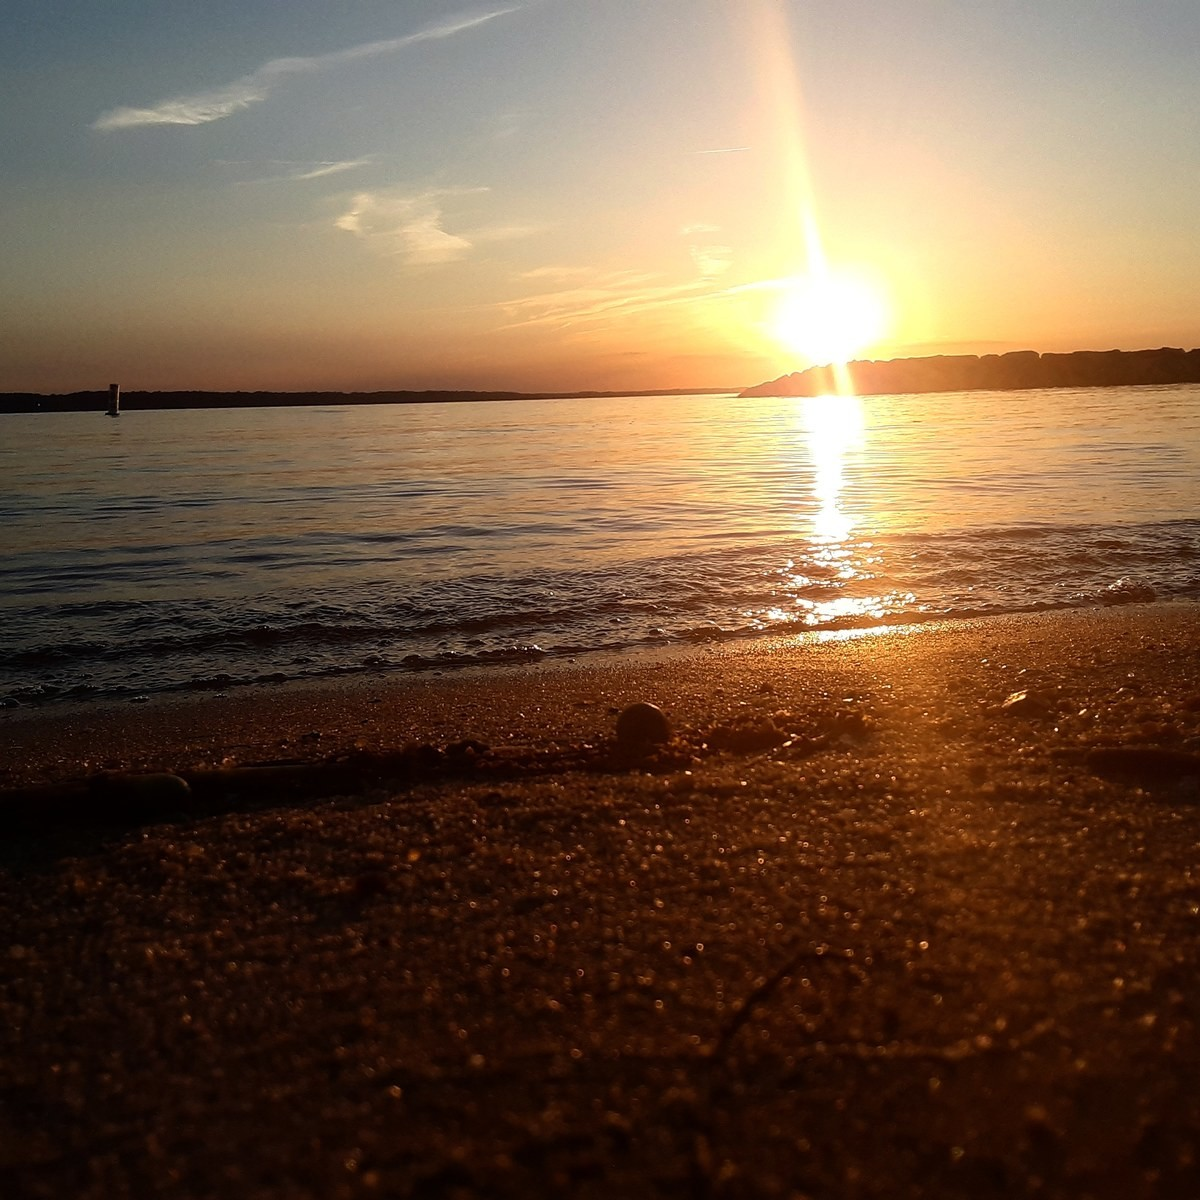 tangy tasty obese Seahorse. Sunset at Jamestown Beach.. nice quality noob